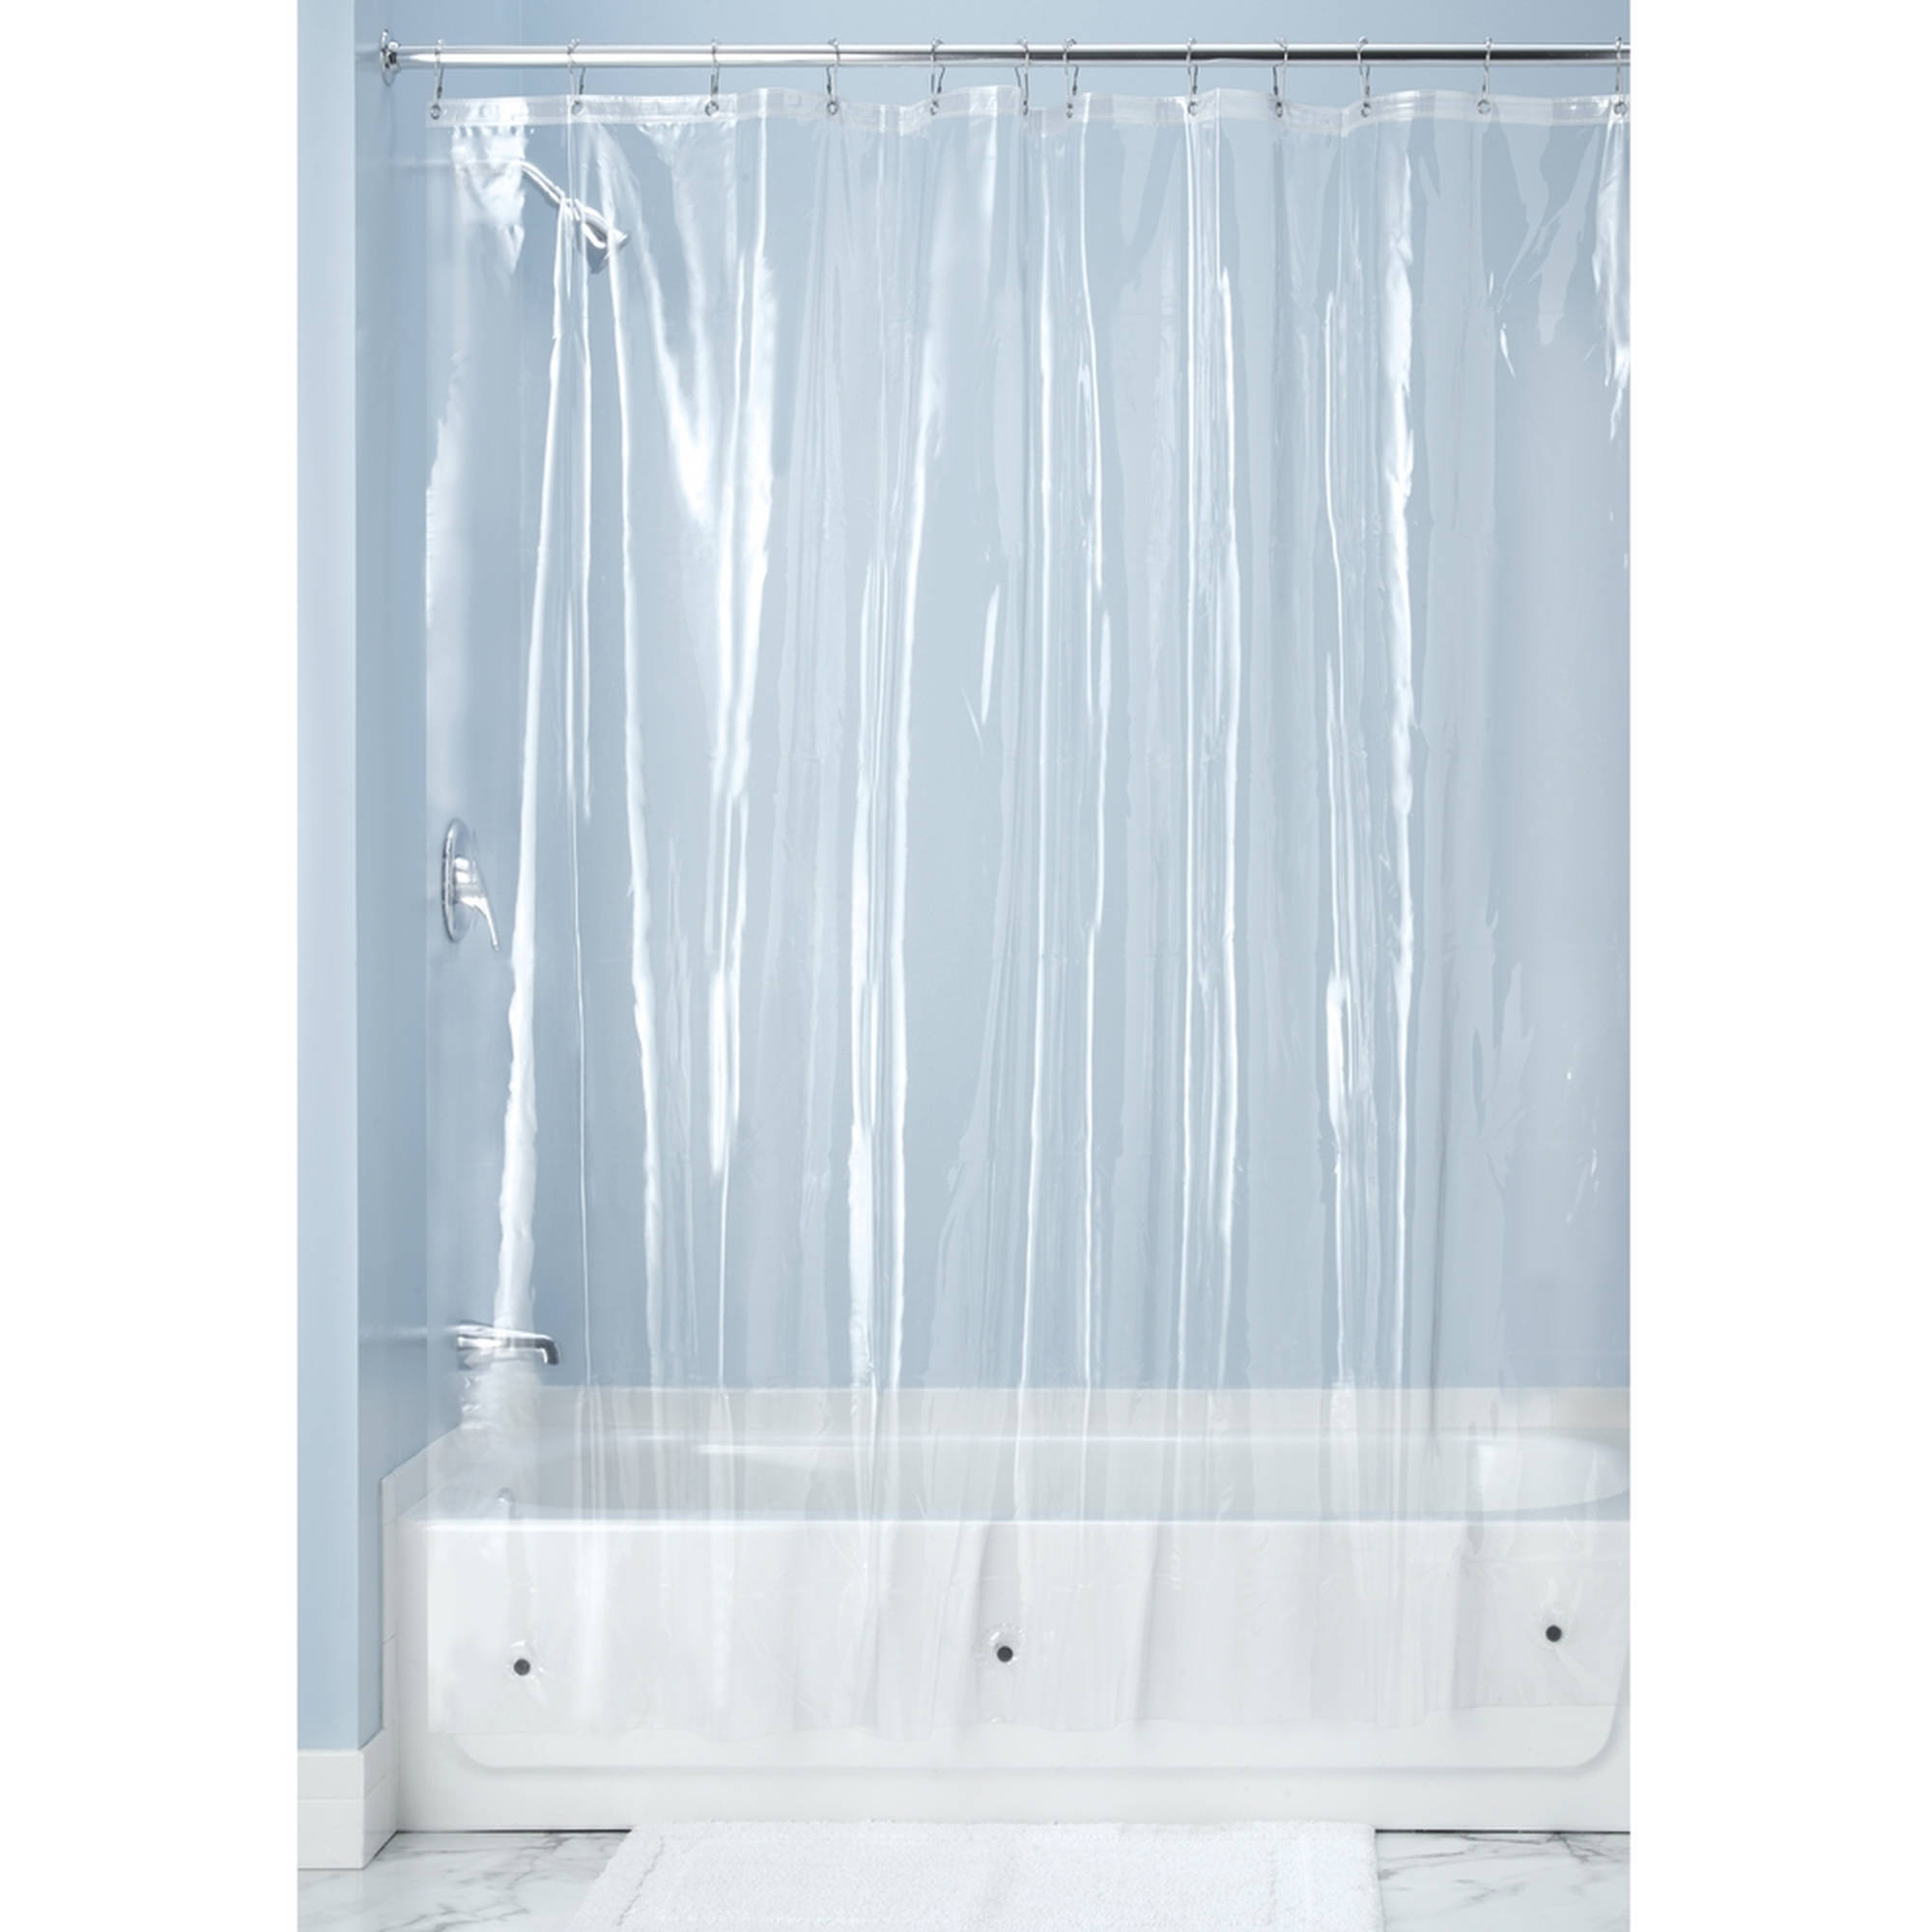 InterDesign 10 Gauge Clear Vinyl Shower Curtain Liner 72 X